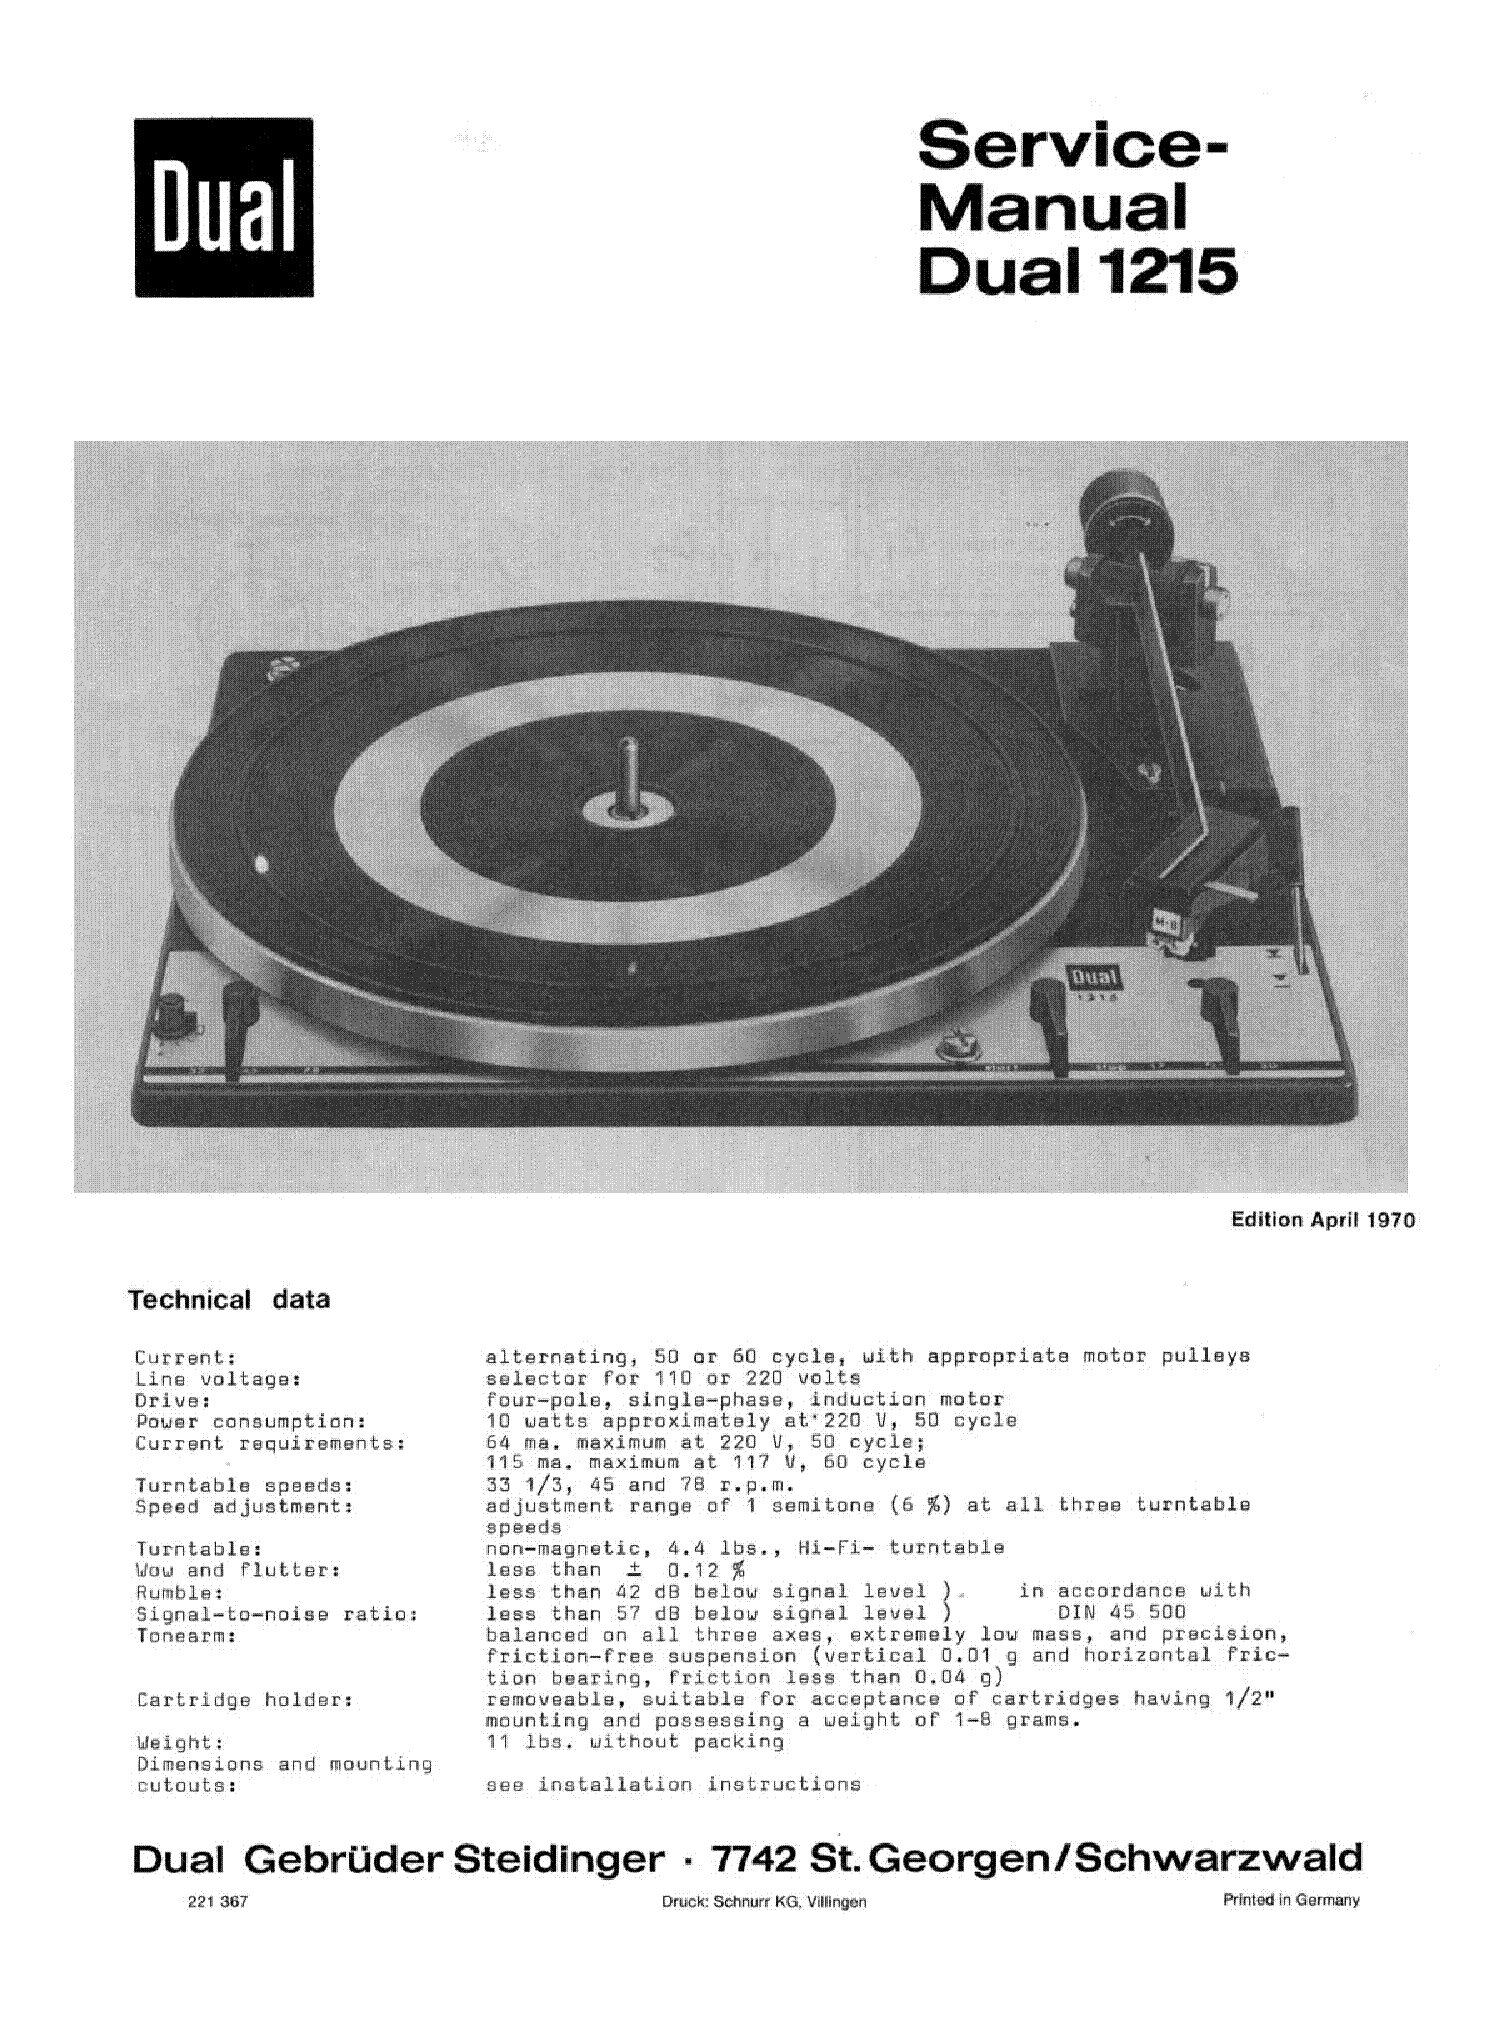 DUAL 1215 TURNTABLE service manual (1st page)